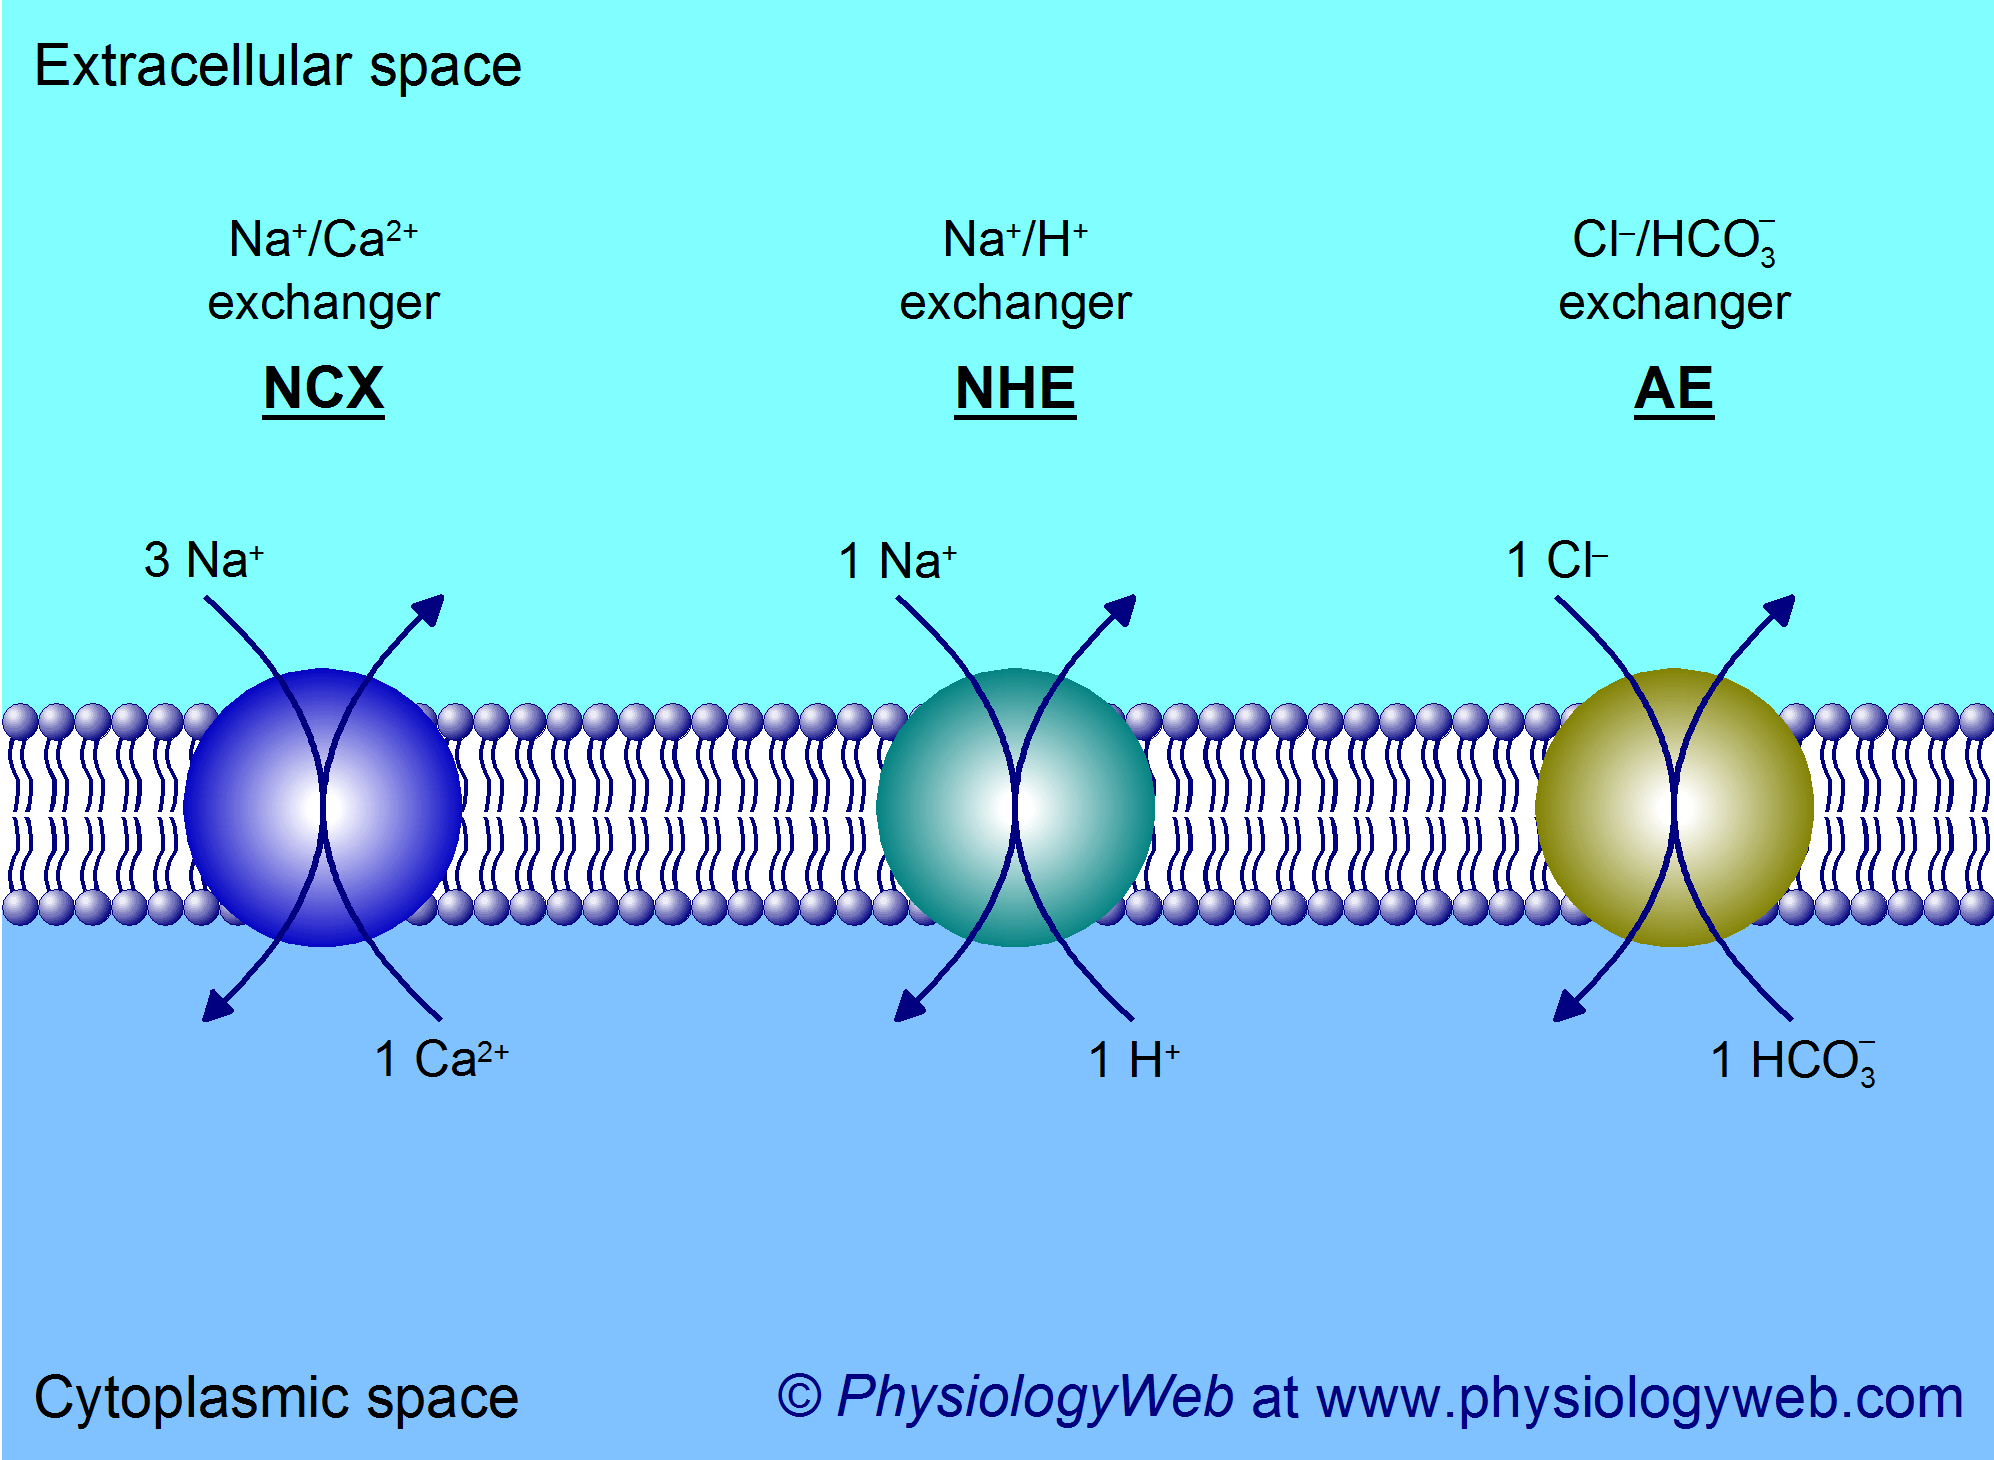 Secondary active transport - Examples of exchangers (antiporters)